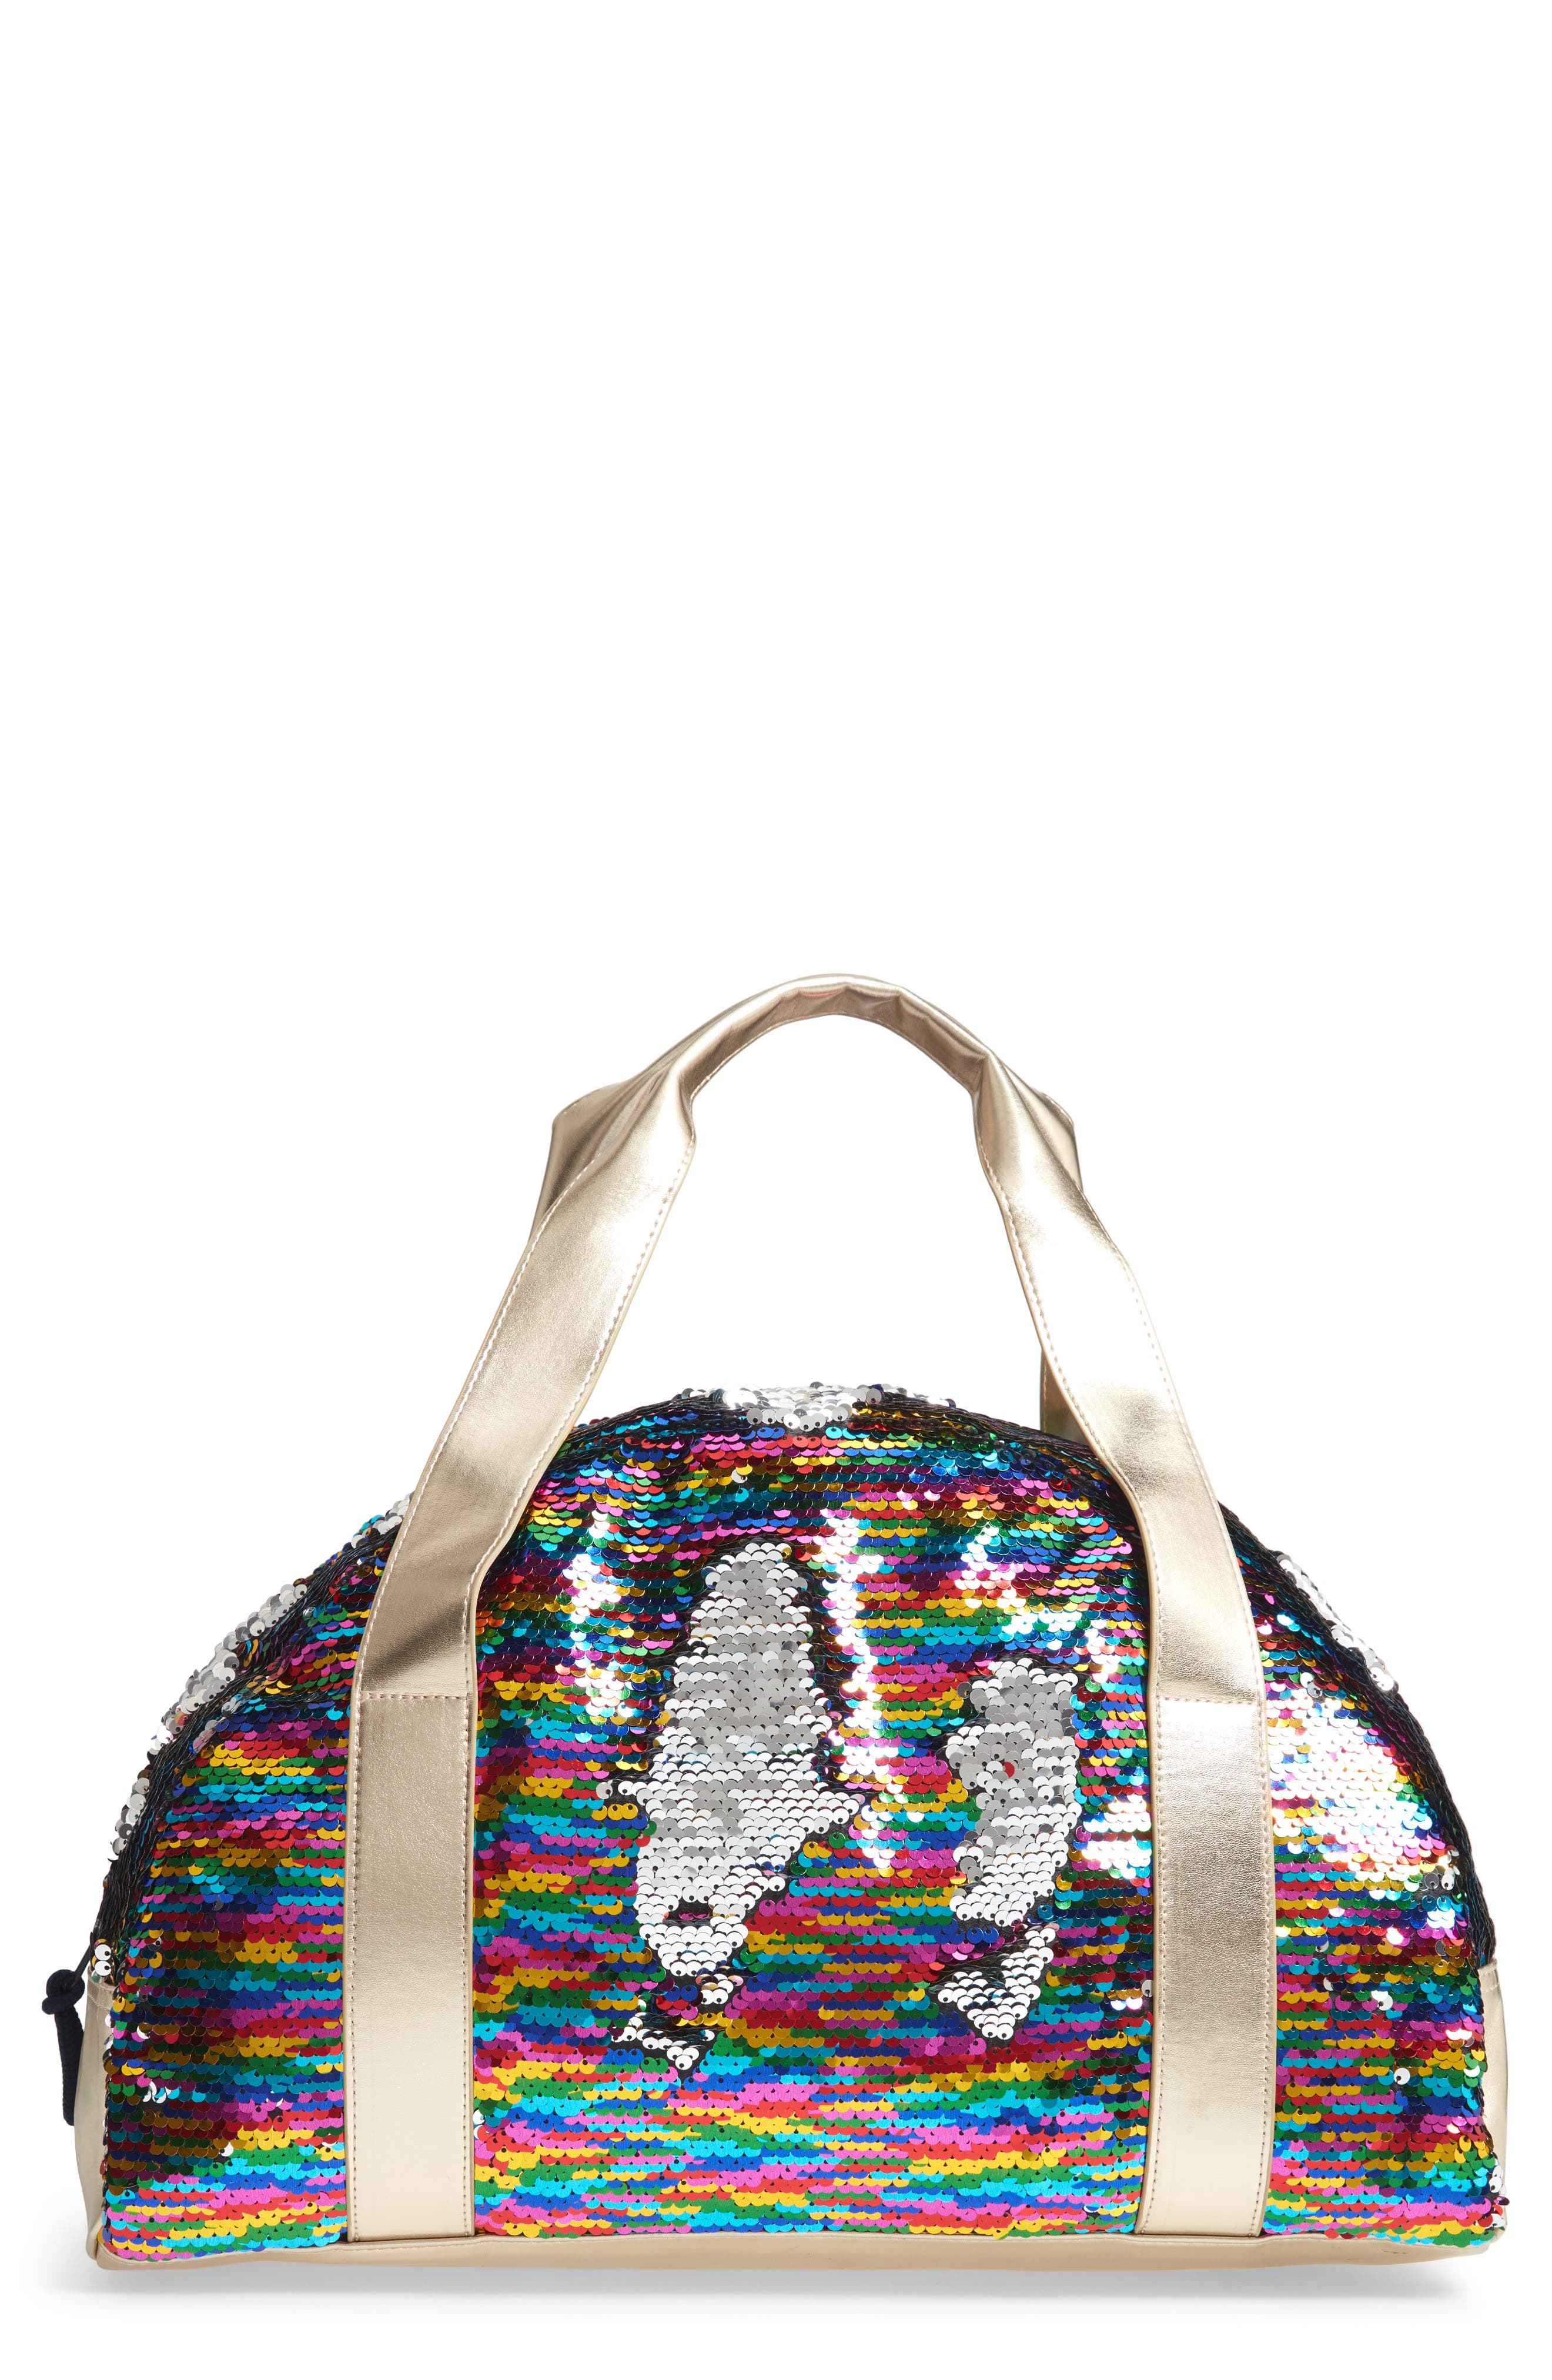 Overnight Bag with Reversible Sequins,                             Main thumbnail 1, color,                             964